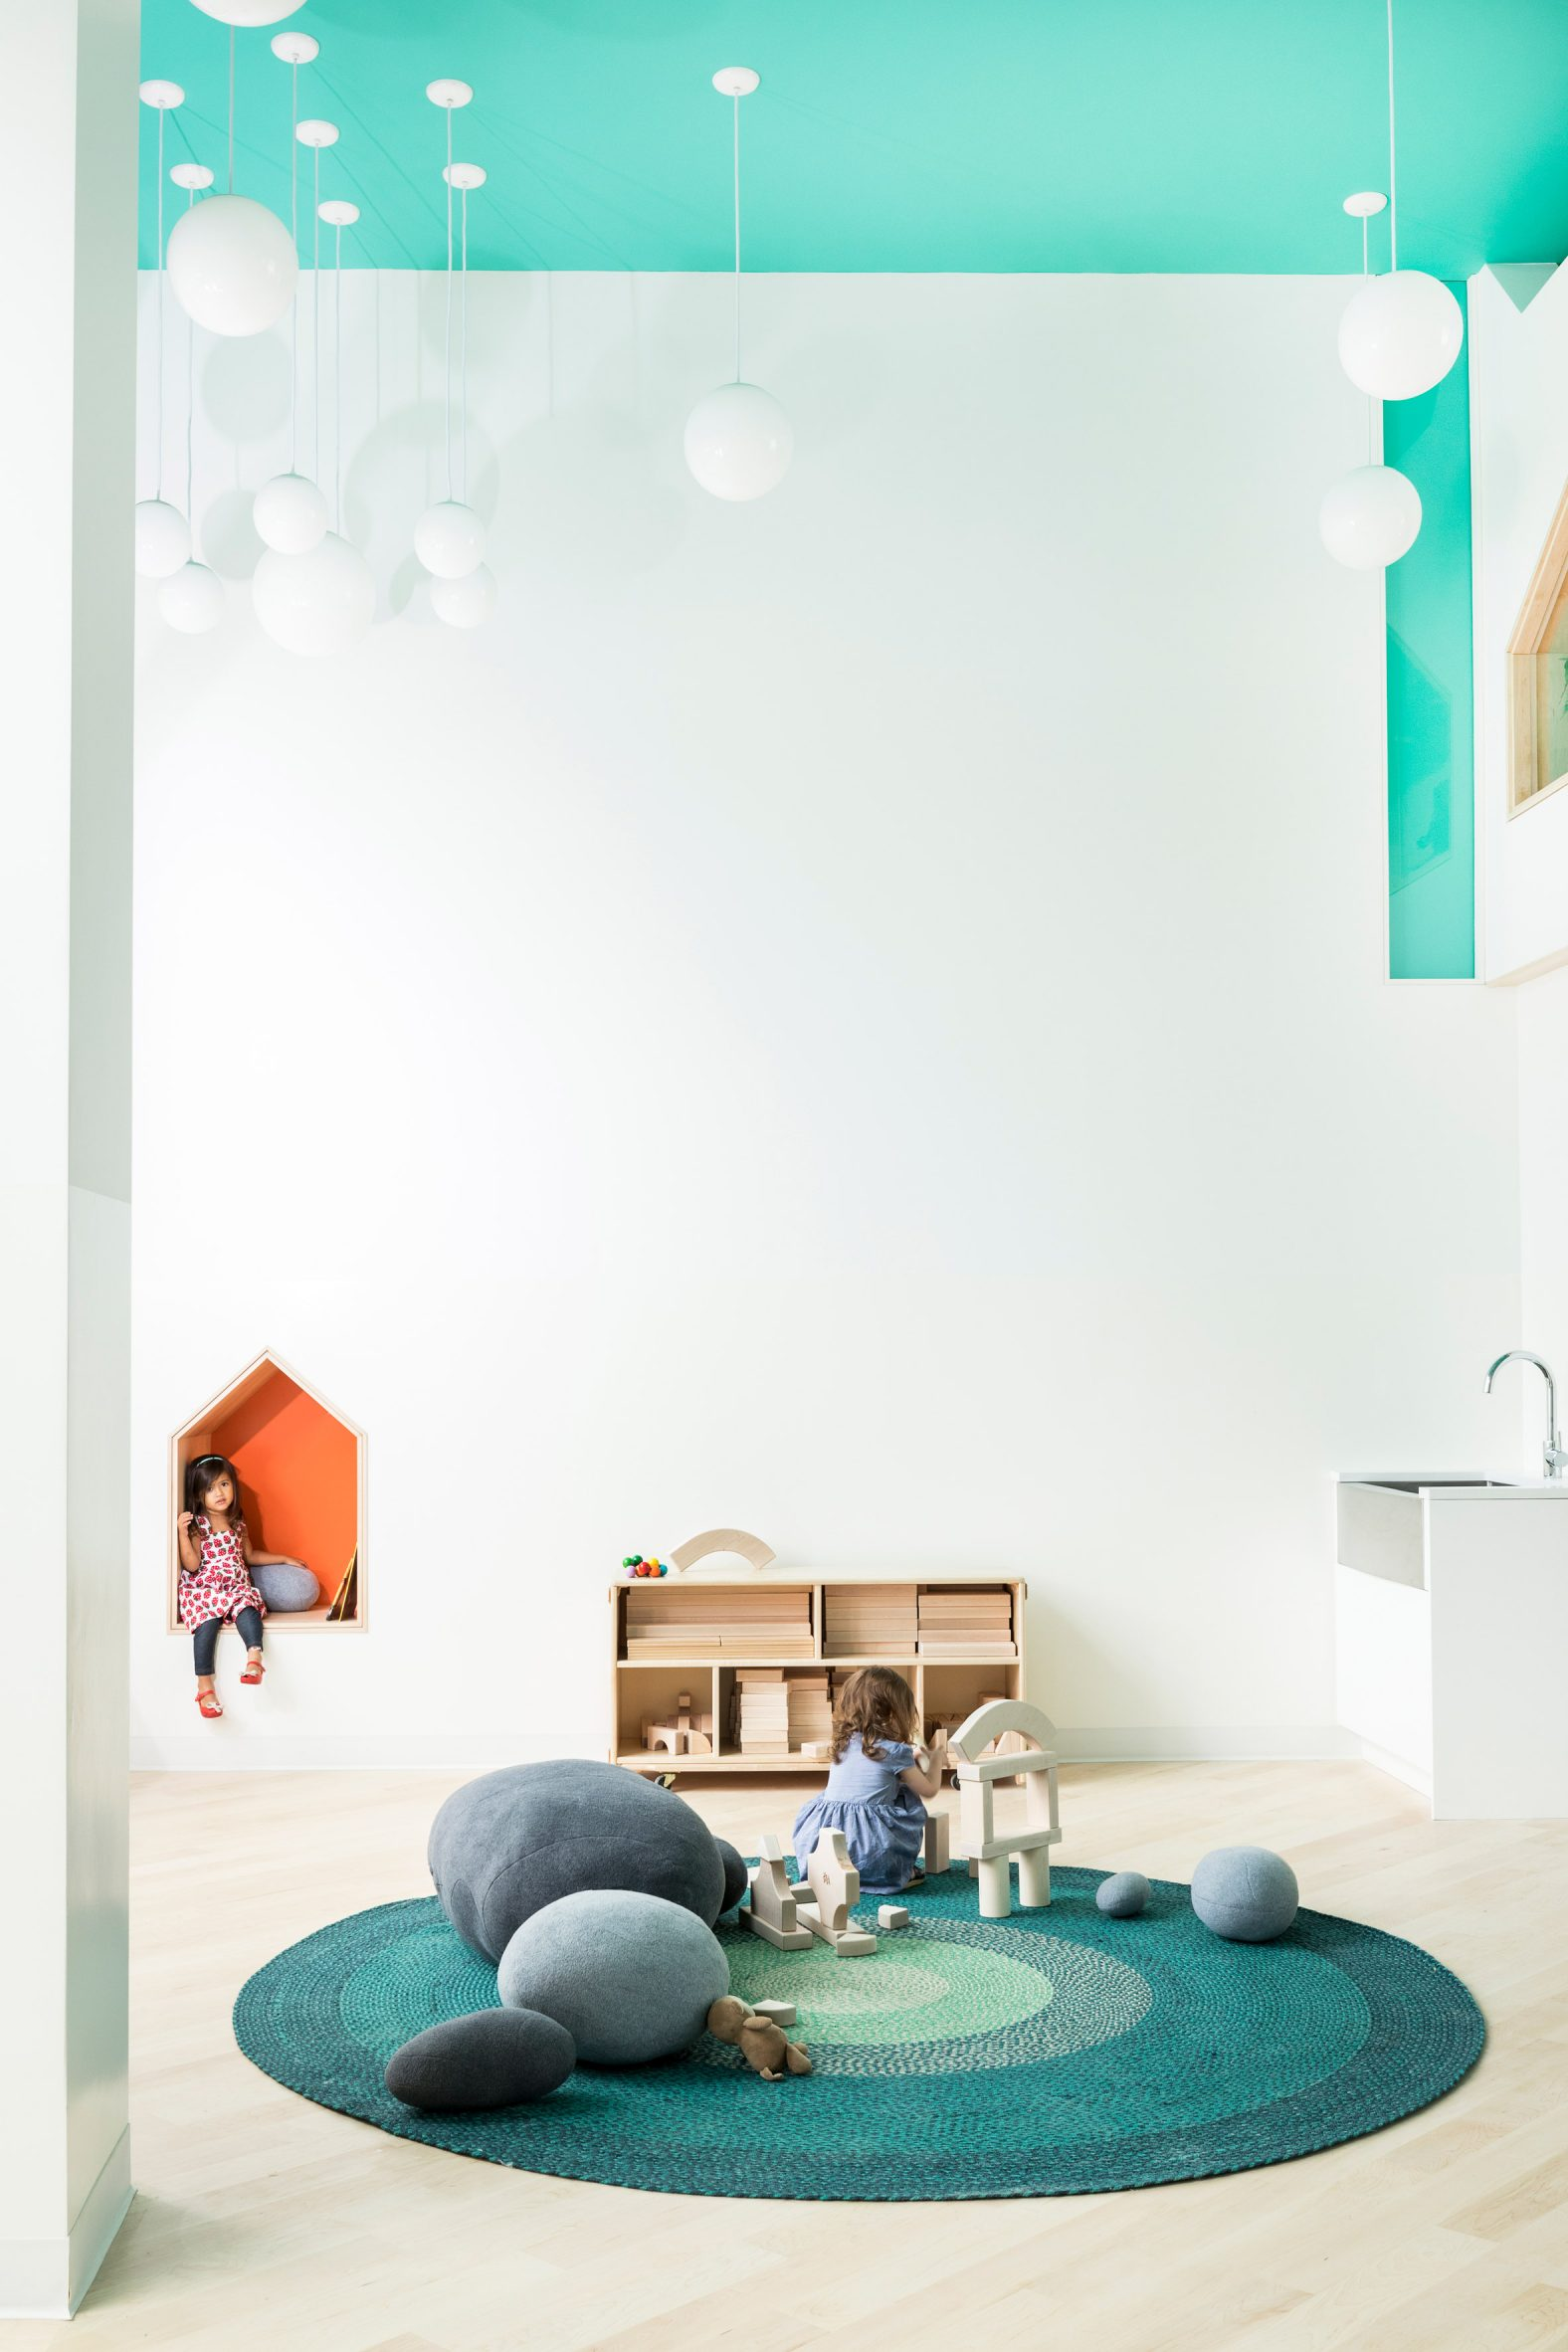 Movable furniture allows the nursery to be reconfigured for special events